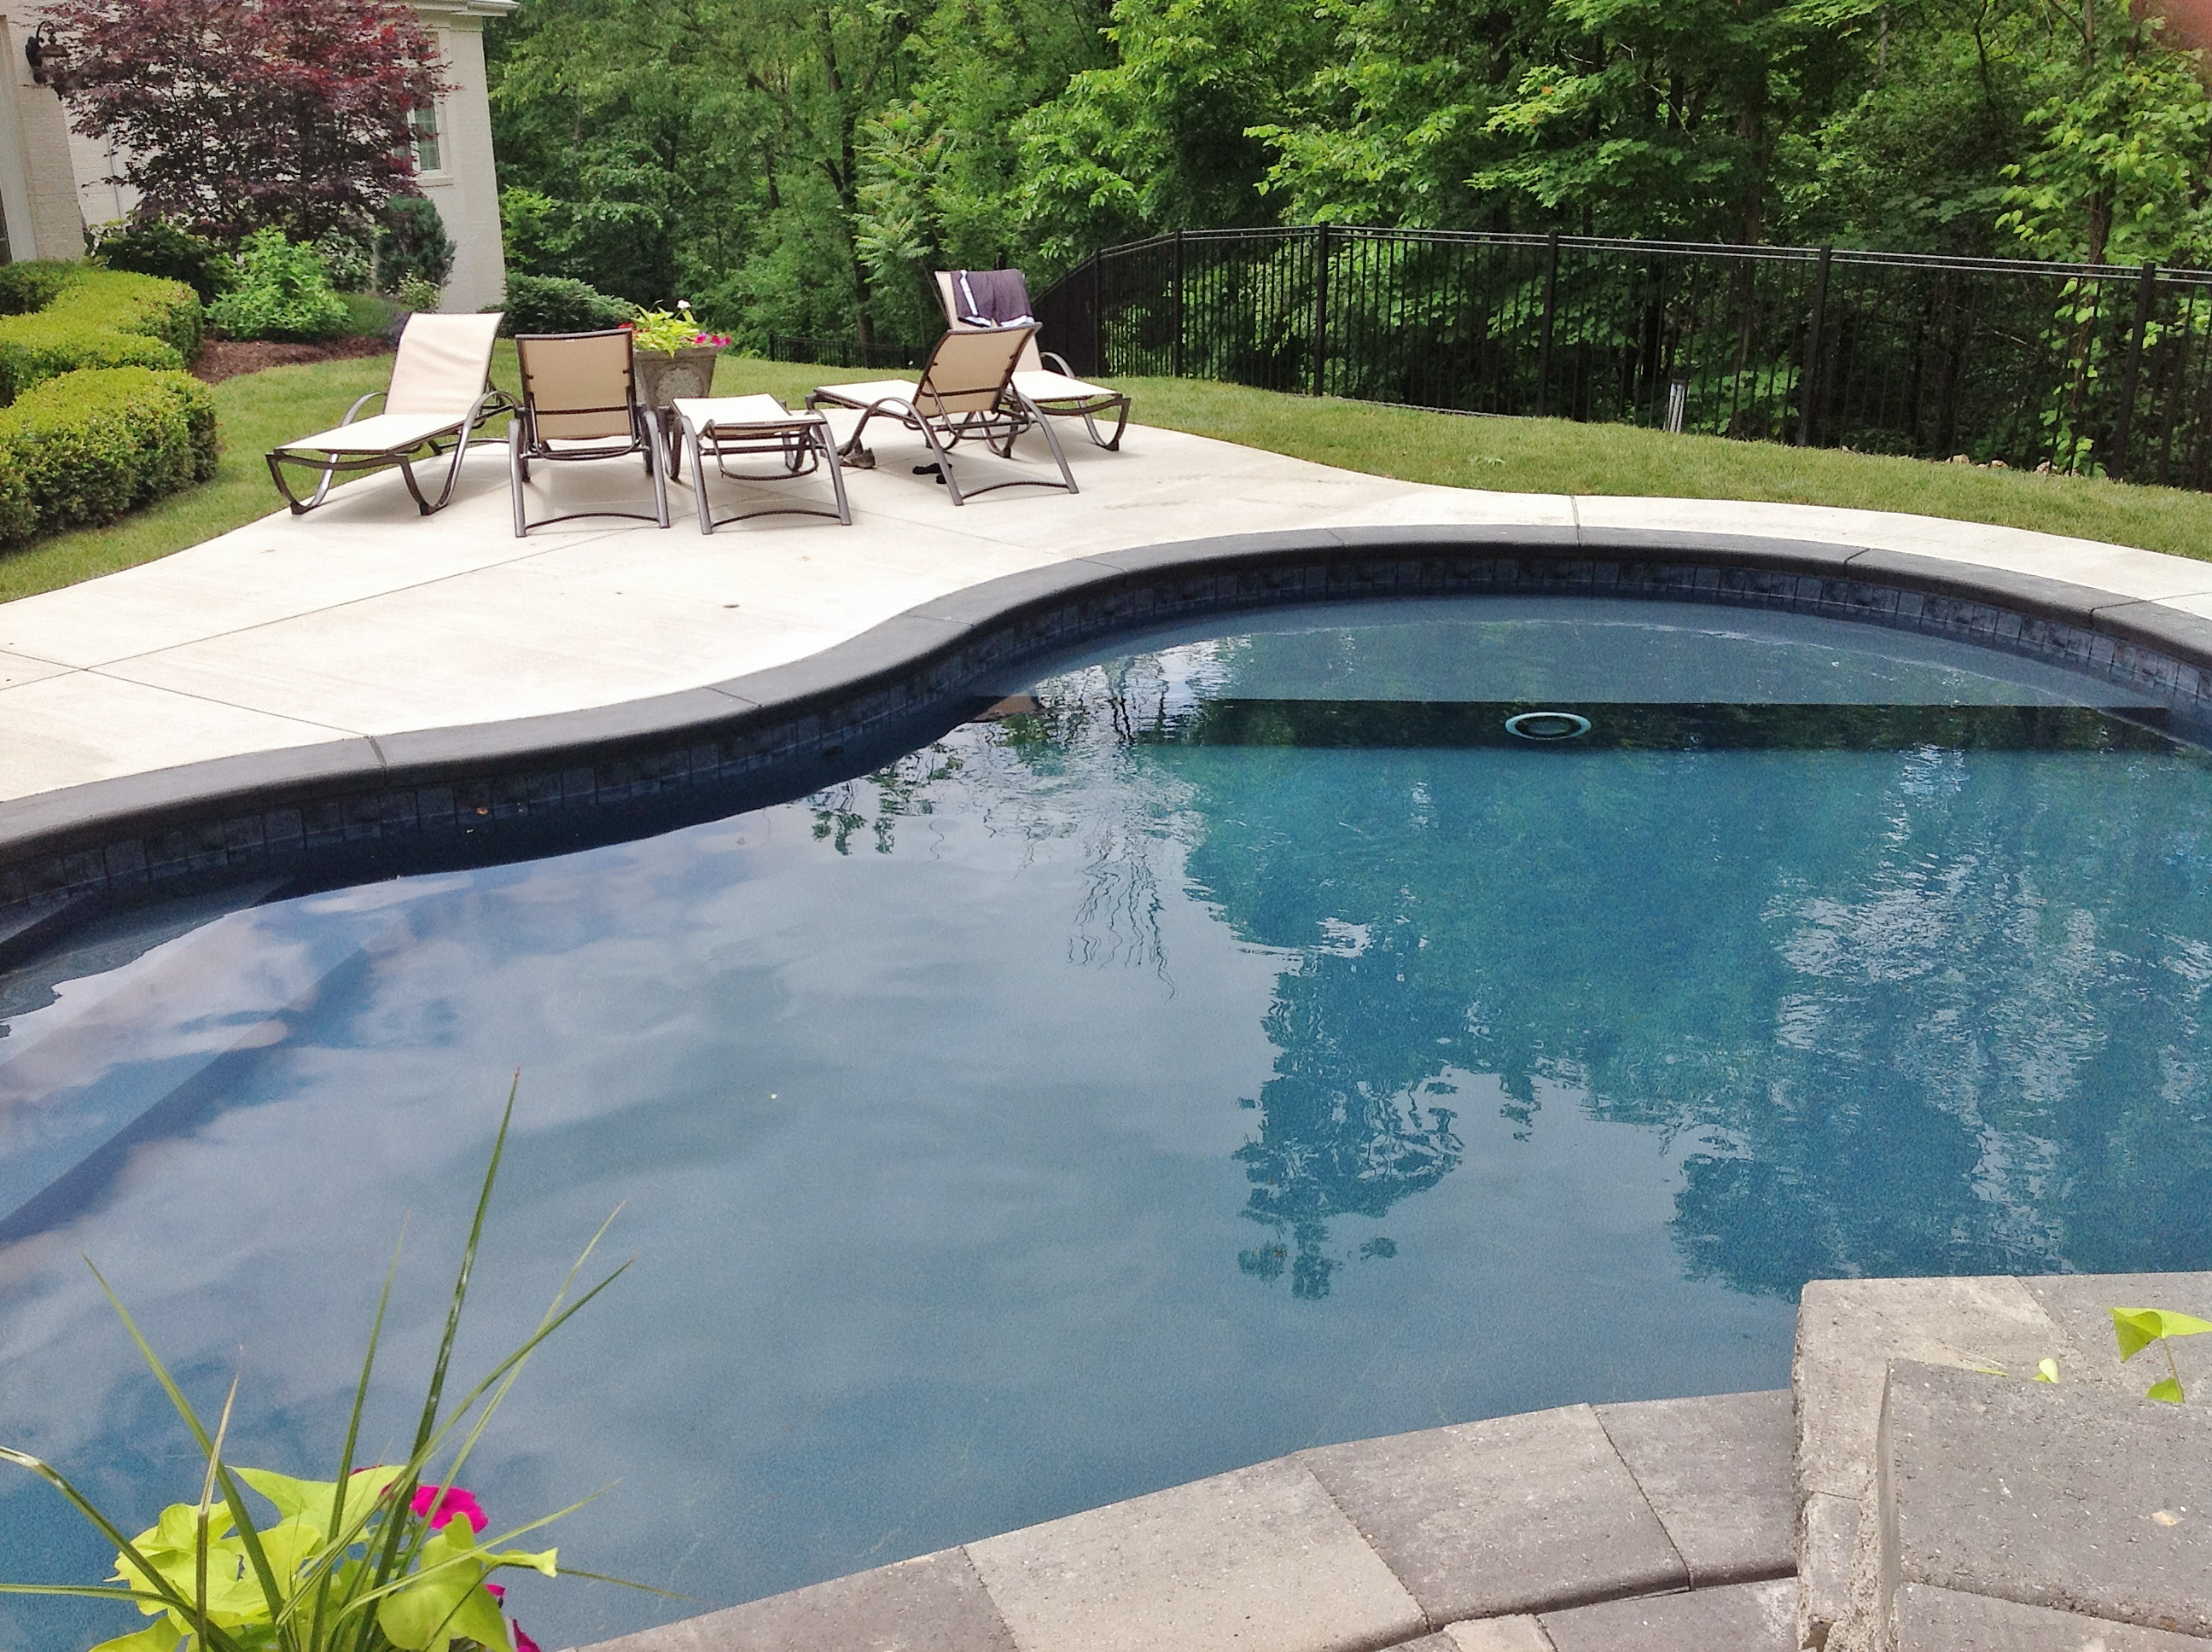 pool designs mcmurray pa emejing pool designs mcmurray